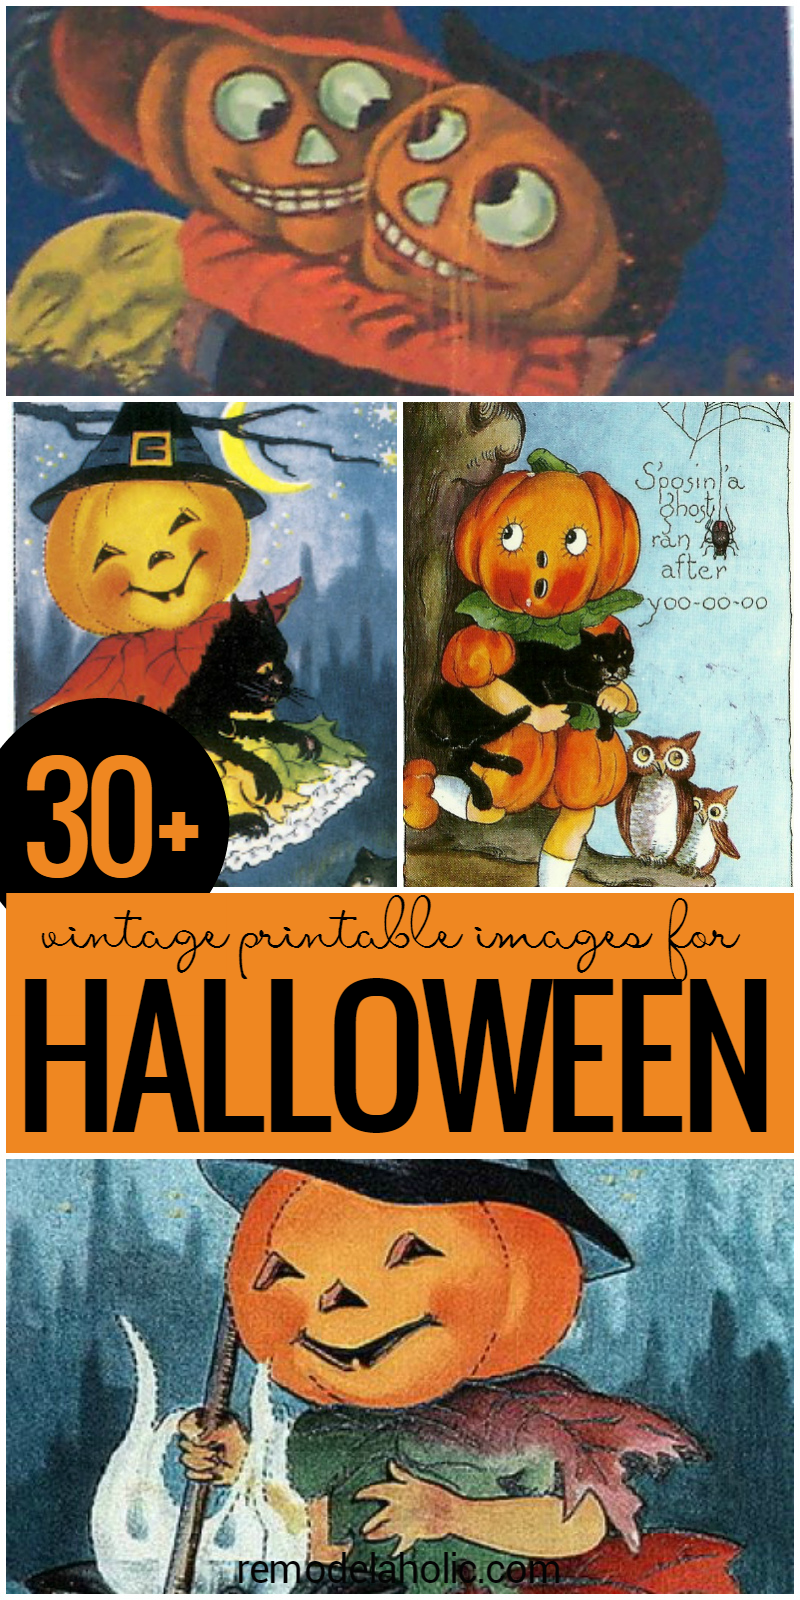 It's just a photo of Geeky Printable Halloween Images